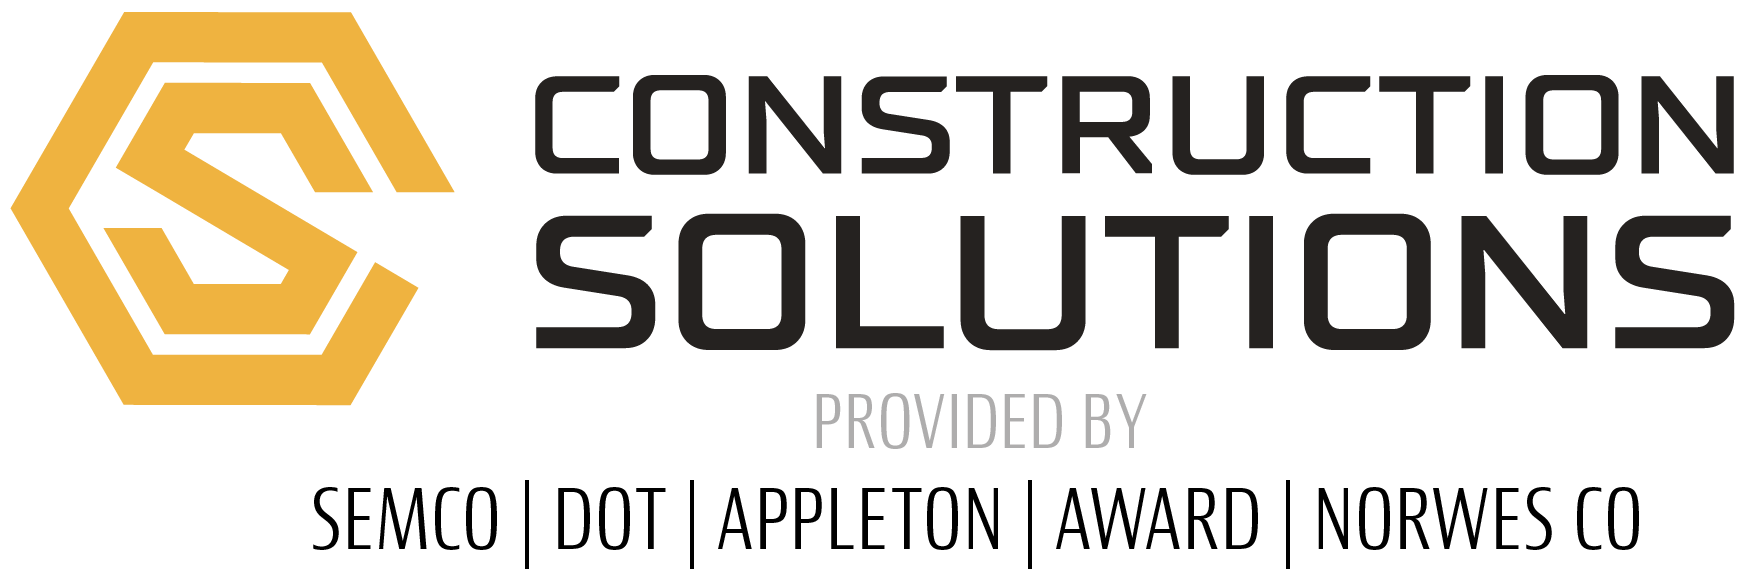 Construction Solutions  - Provided by Logo